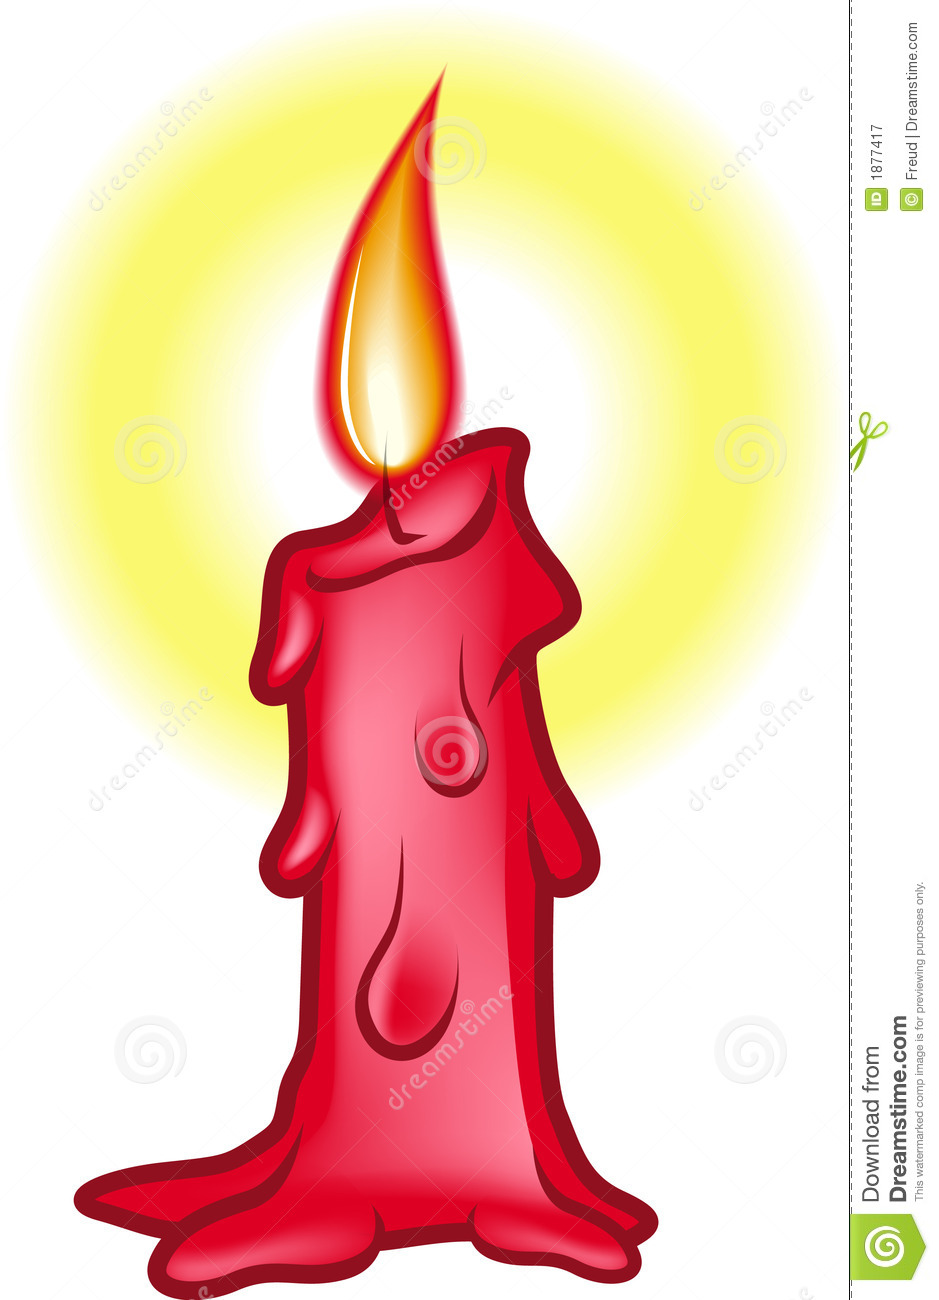 Candles clipart single. Birthday candle cilpart marvelous